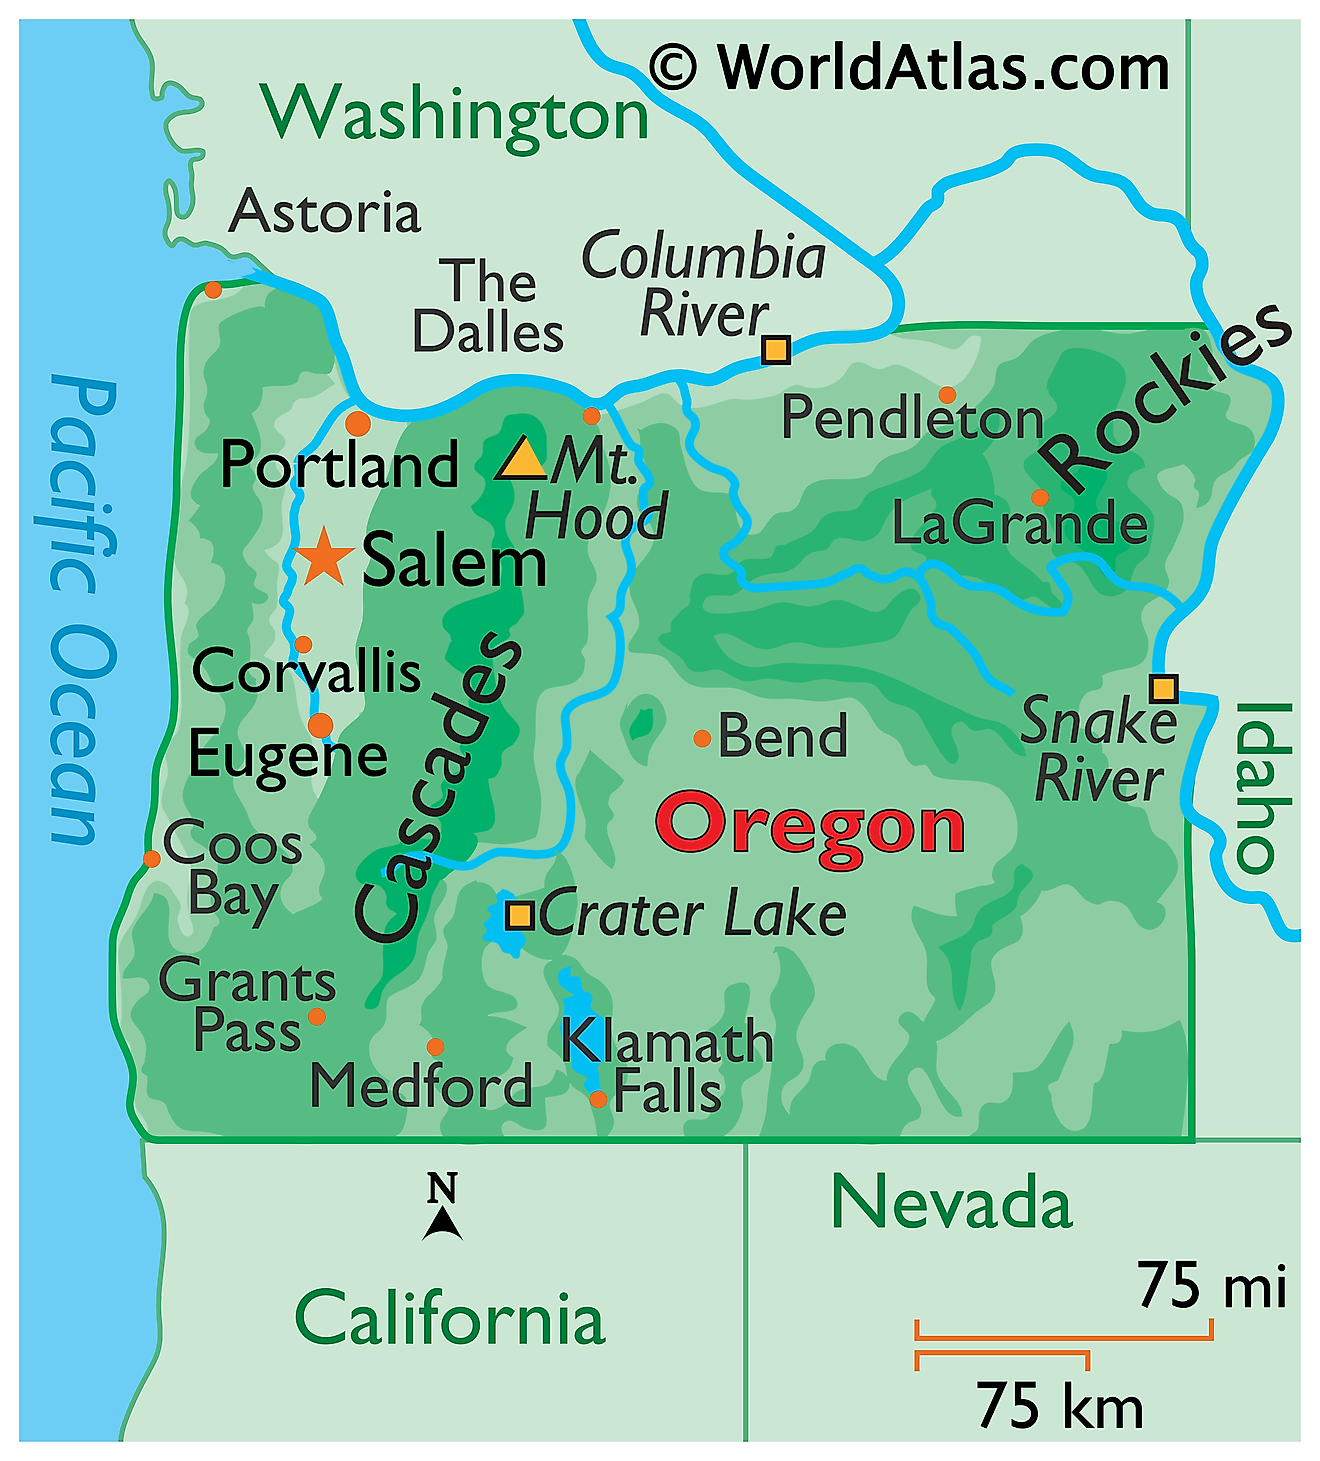 Physical Map of Oregon. It shows the physical features of Oregon including its mountain ranges, plateaus, rivers and major lakes.